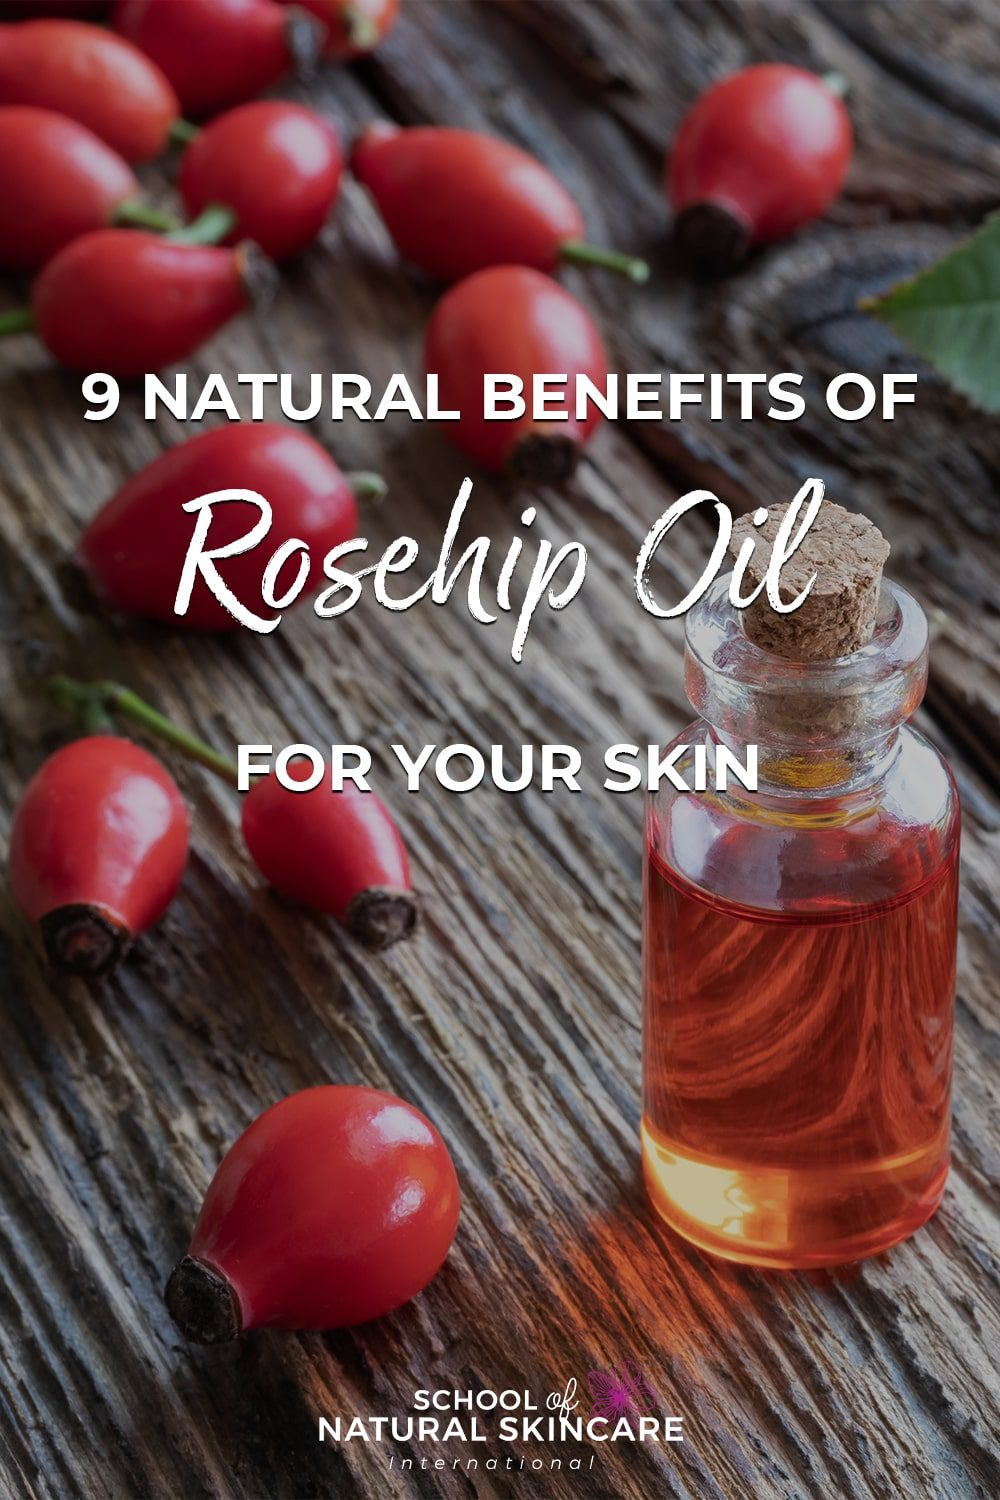 9 Natural Benefits of Rosehip Oil for Your Skin Natural Skincare Ingredients